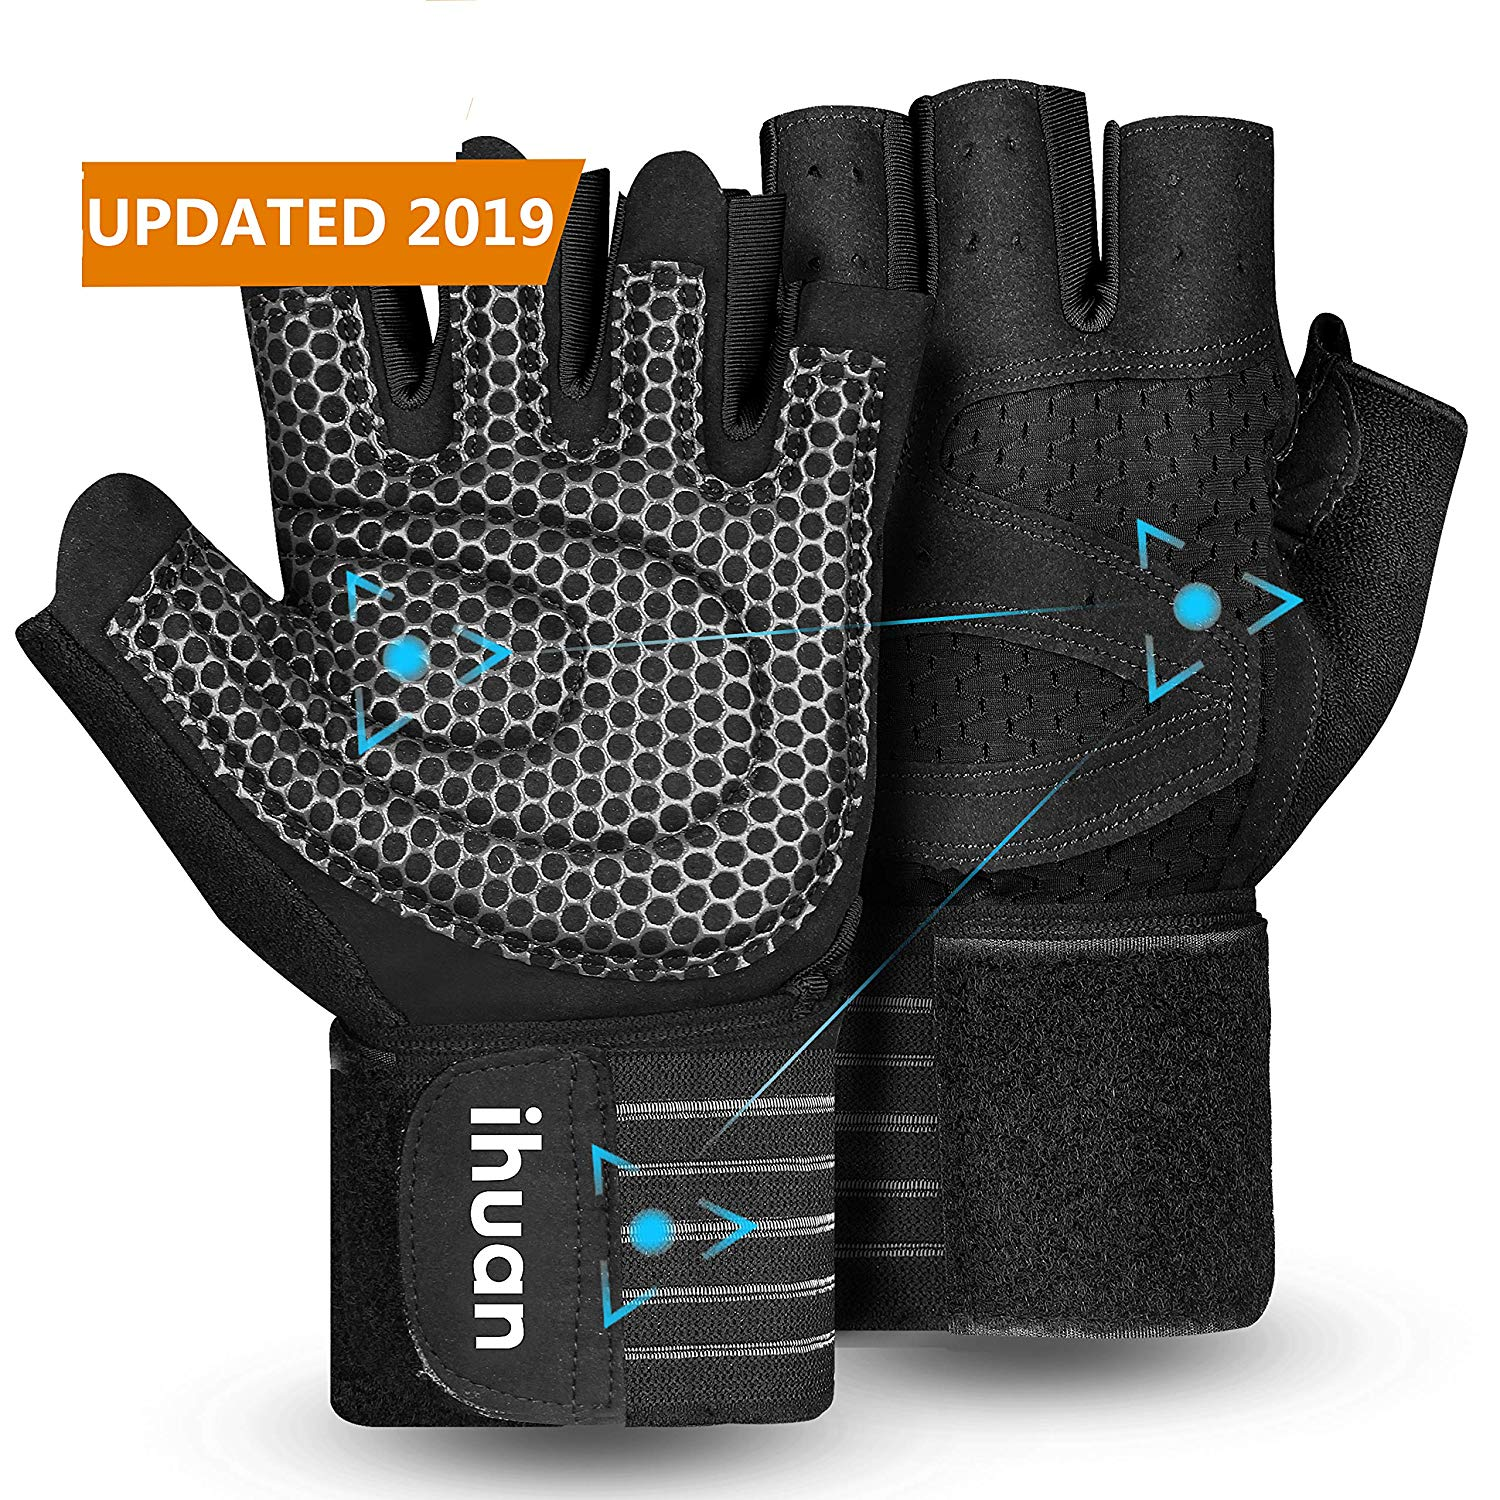 Lebboulder Workout Gloves: 10 Best Quality Workout Gloves Review In 2019